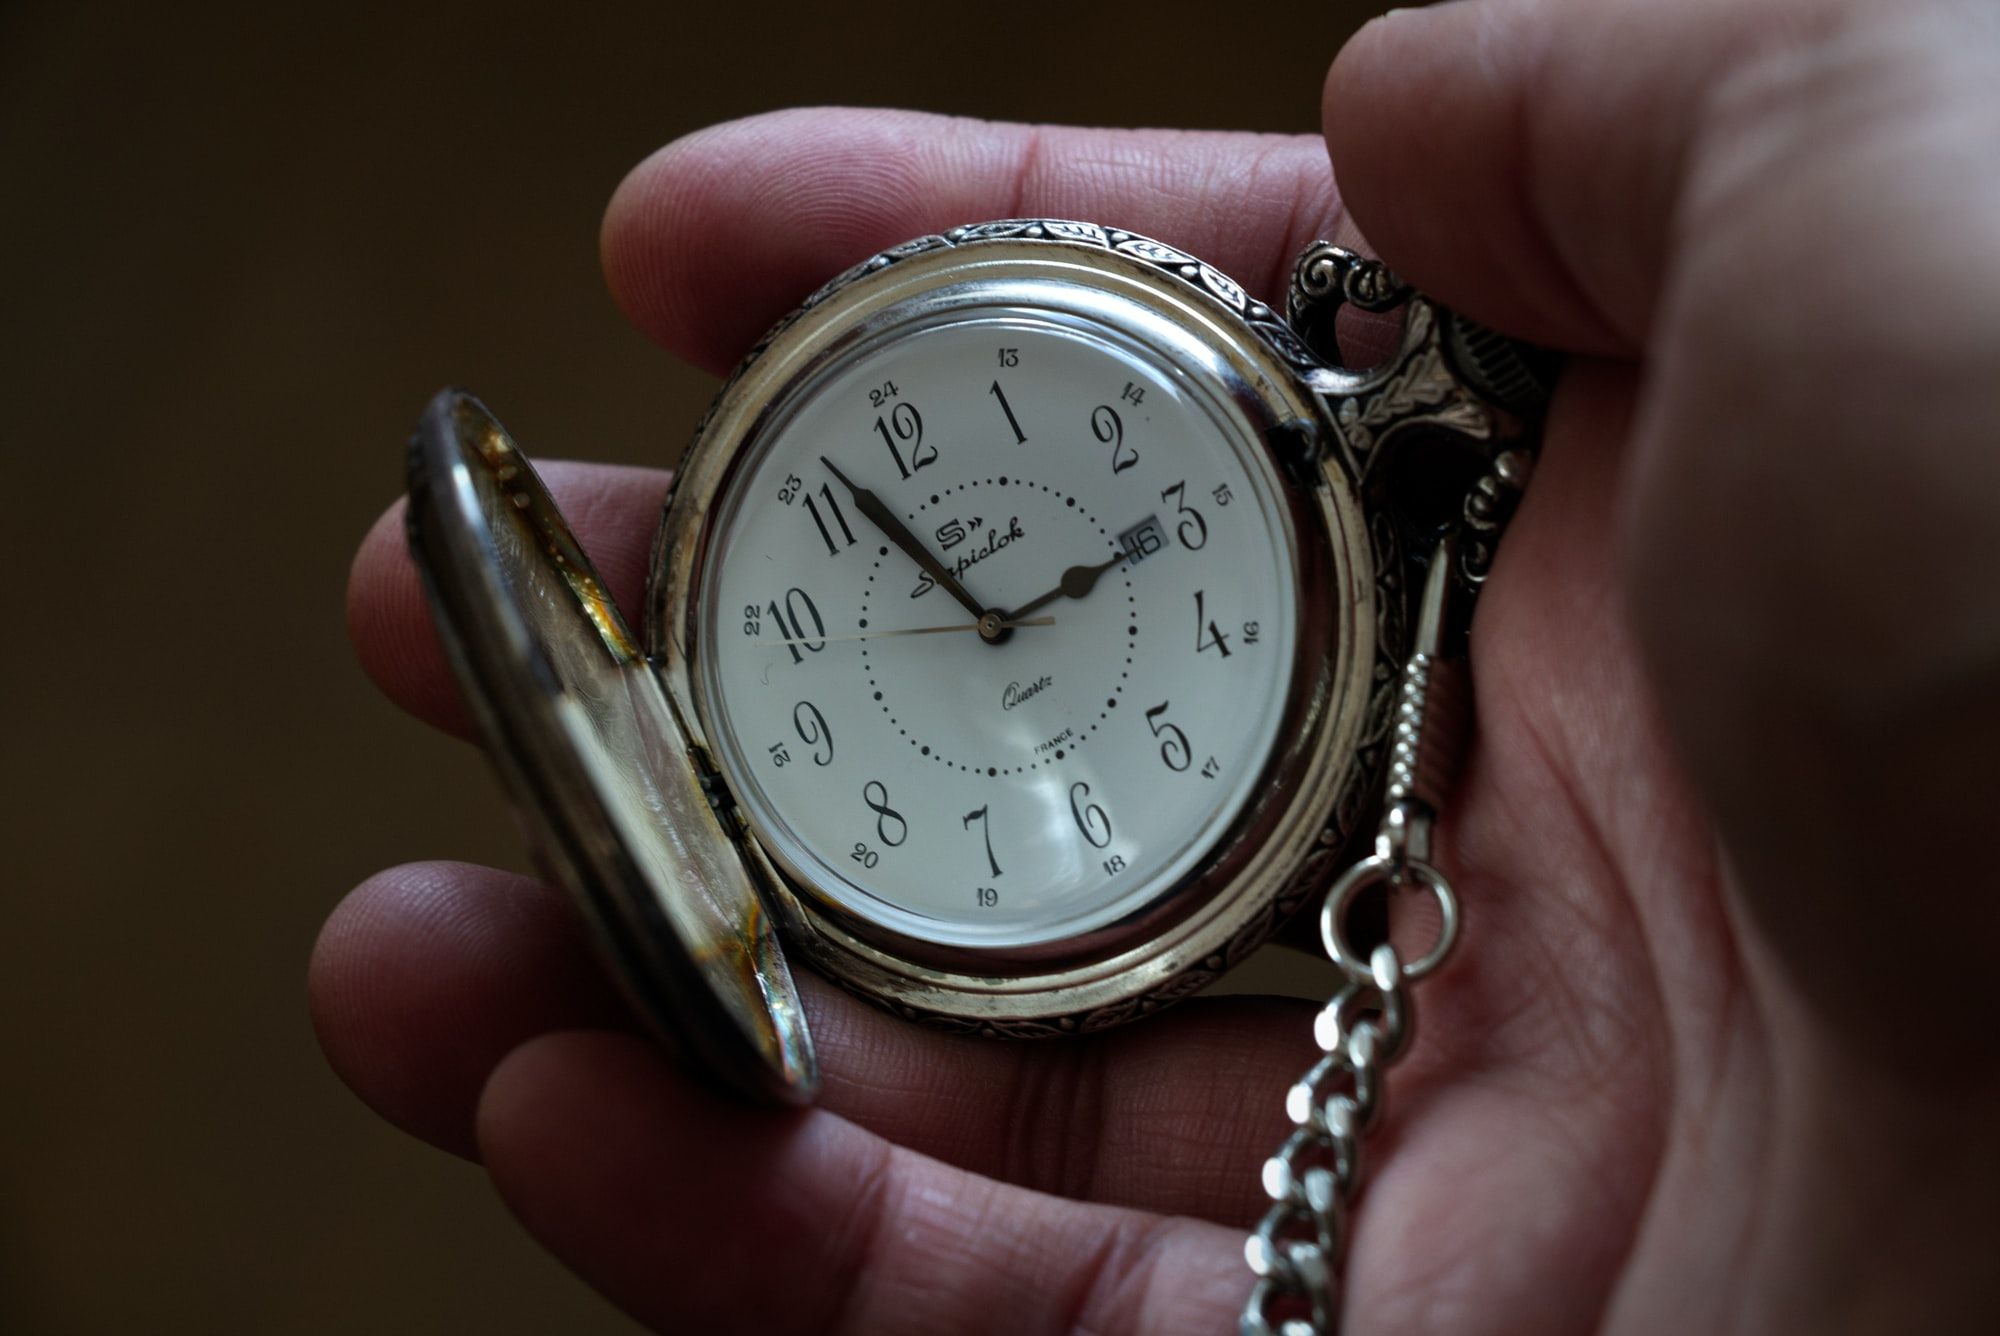 Weekend Reads: Pocket Watches, Notes, Drinking with the French, and Podcasting from Hell